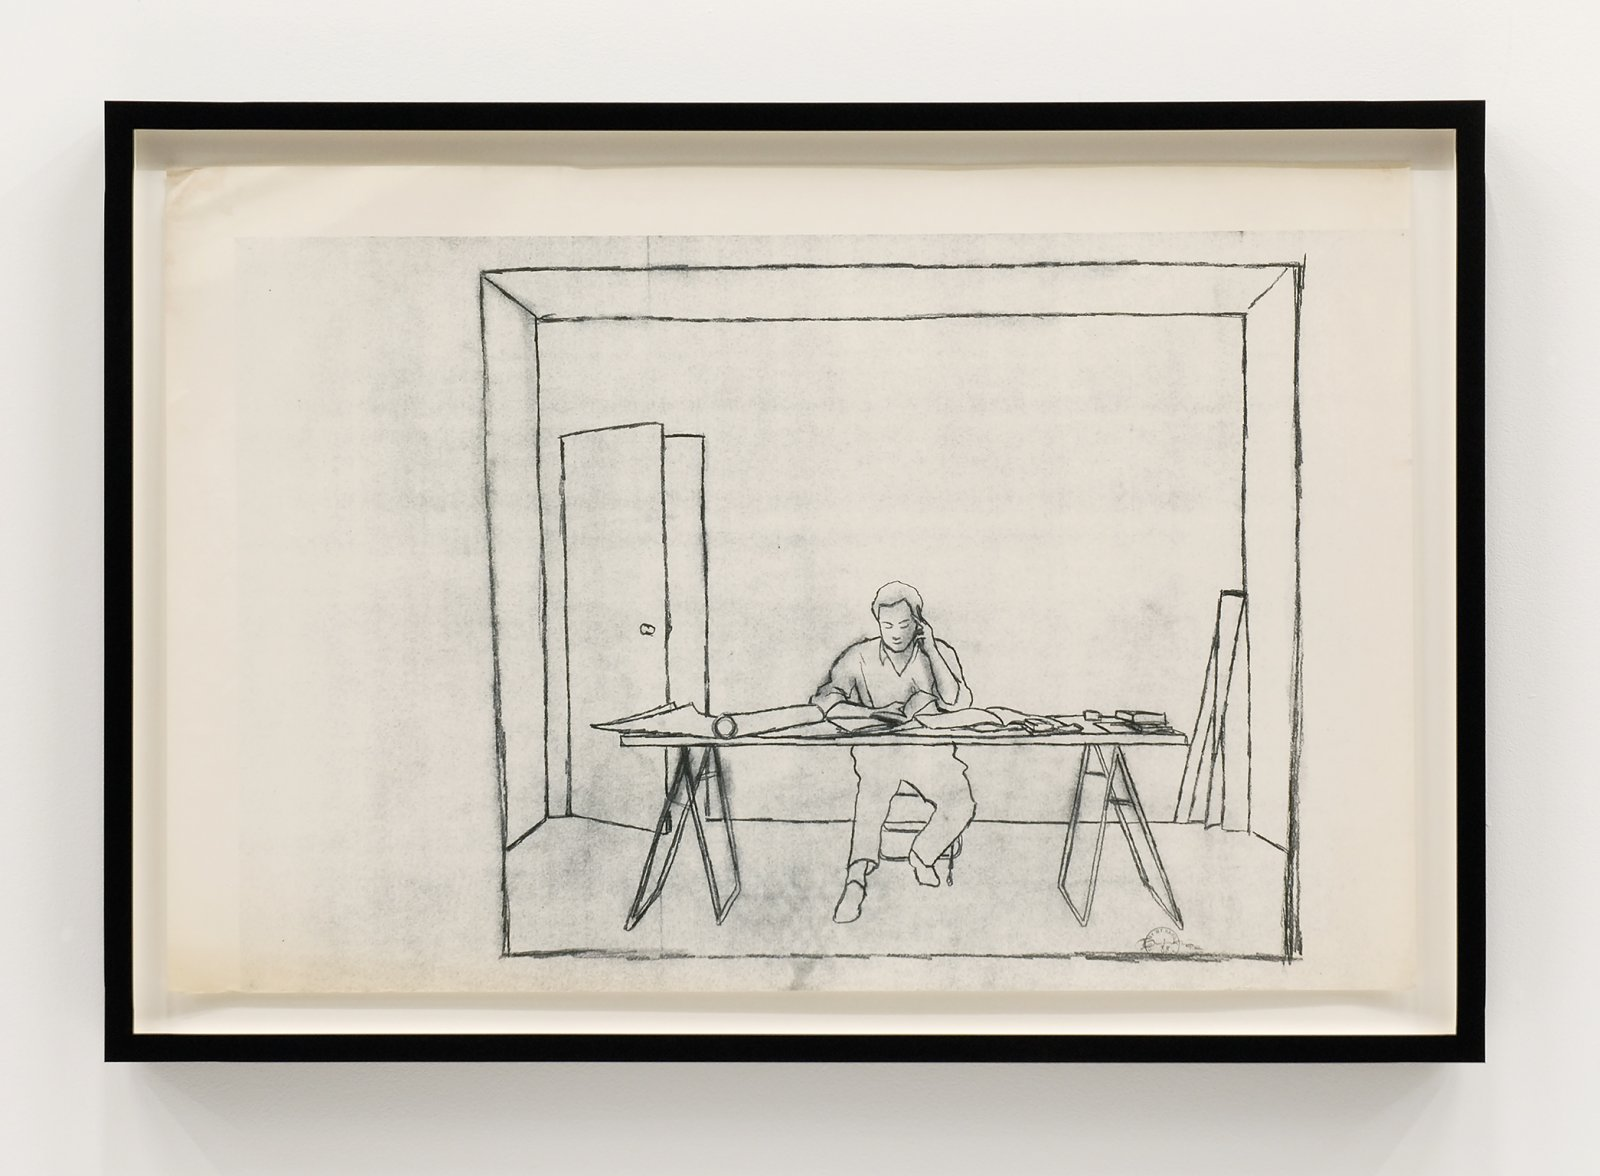 Ian Wallace, At Work 1983, 1983, dyazoprint from graphite on paper drawing, 22 x 34 in. (56 x 86 cm) by Ian Wallace